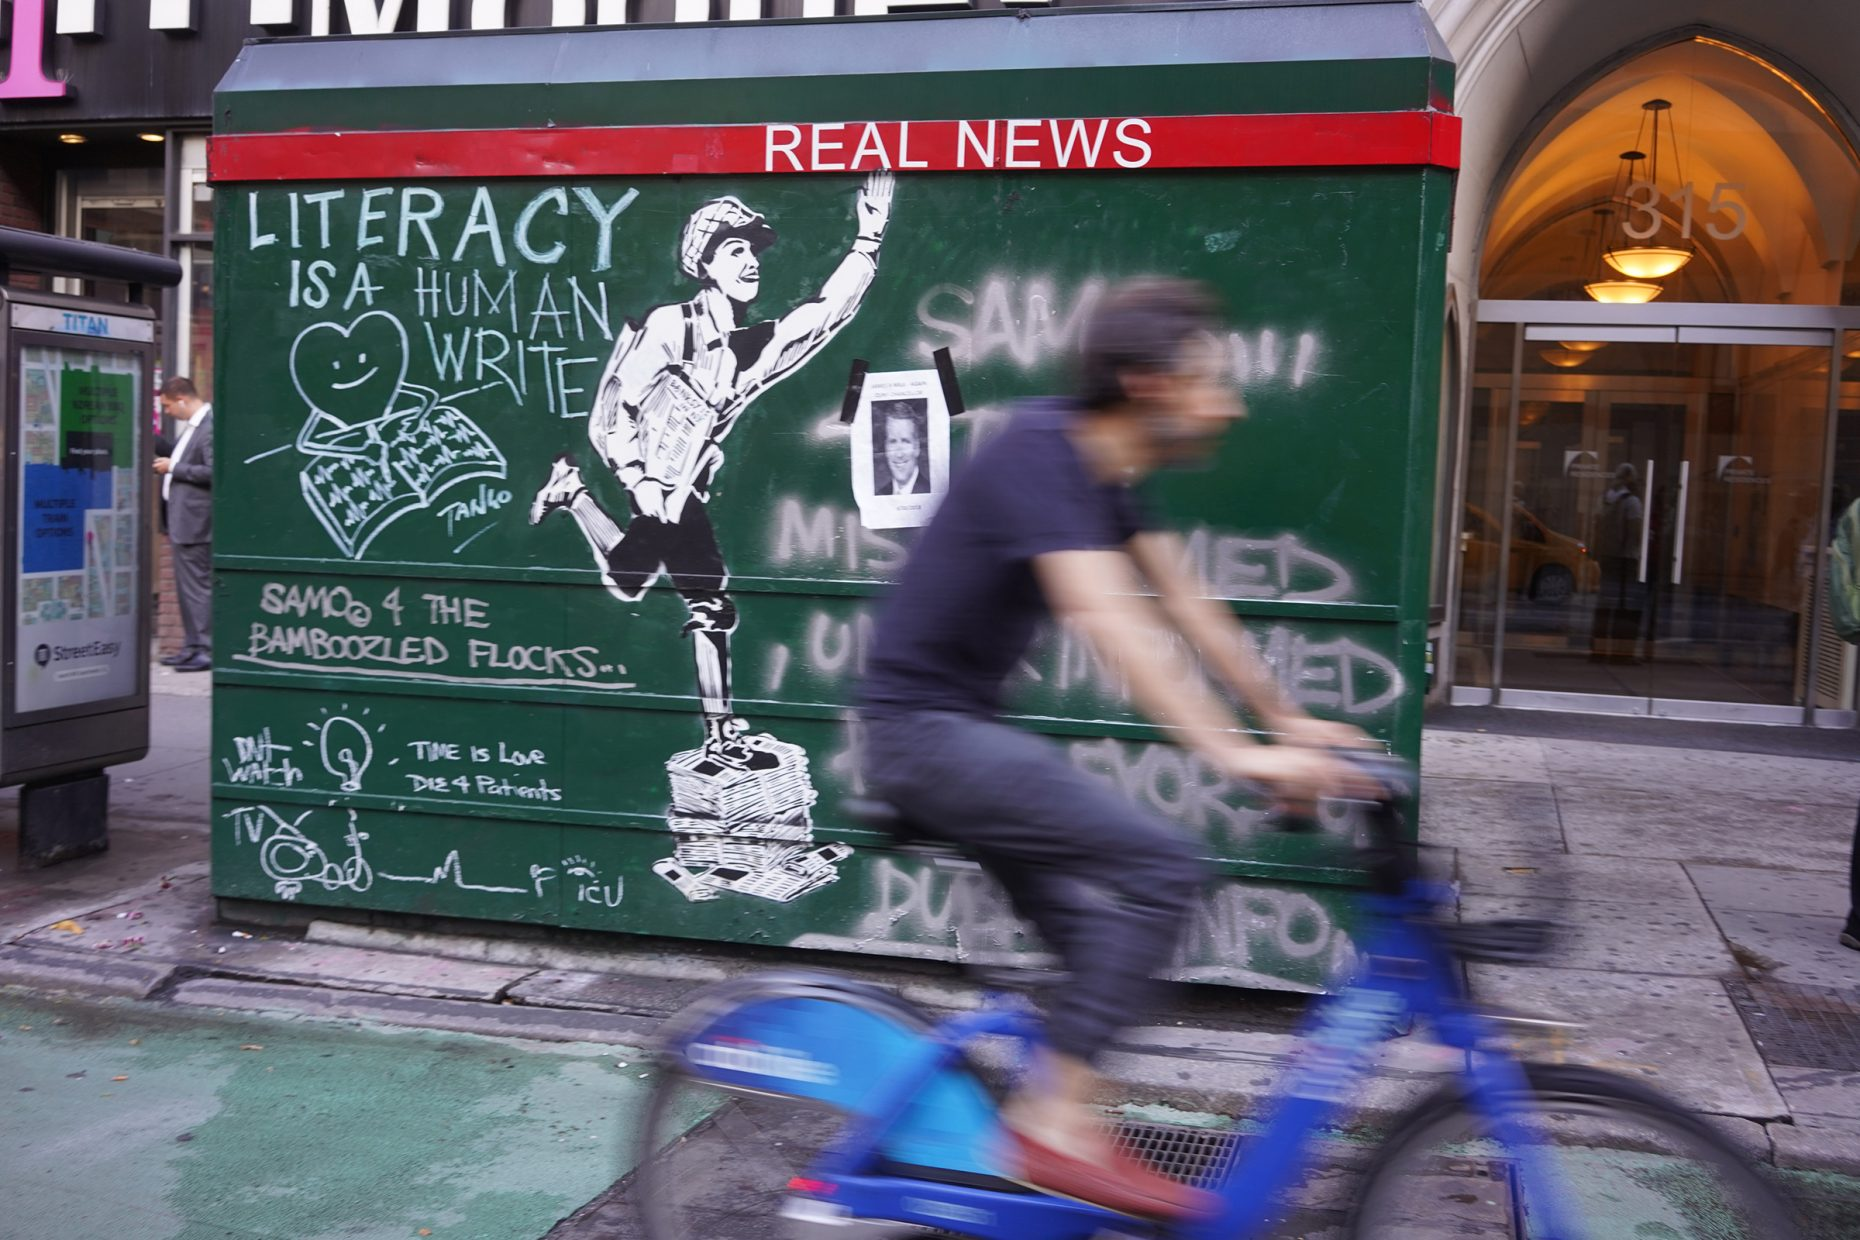 A man on a bicycle rids past street art that says